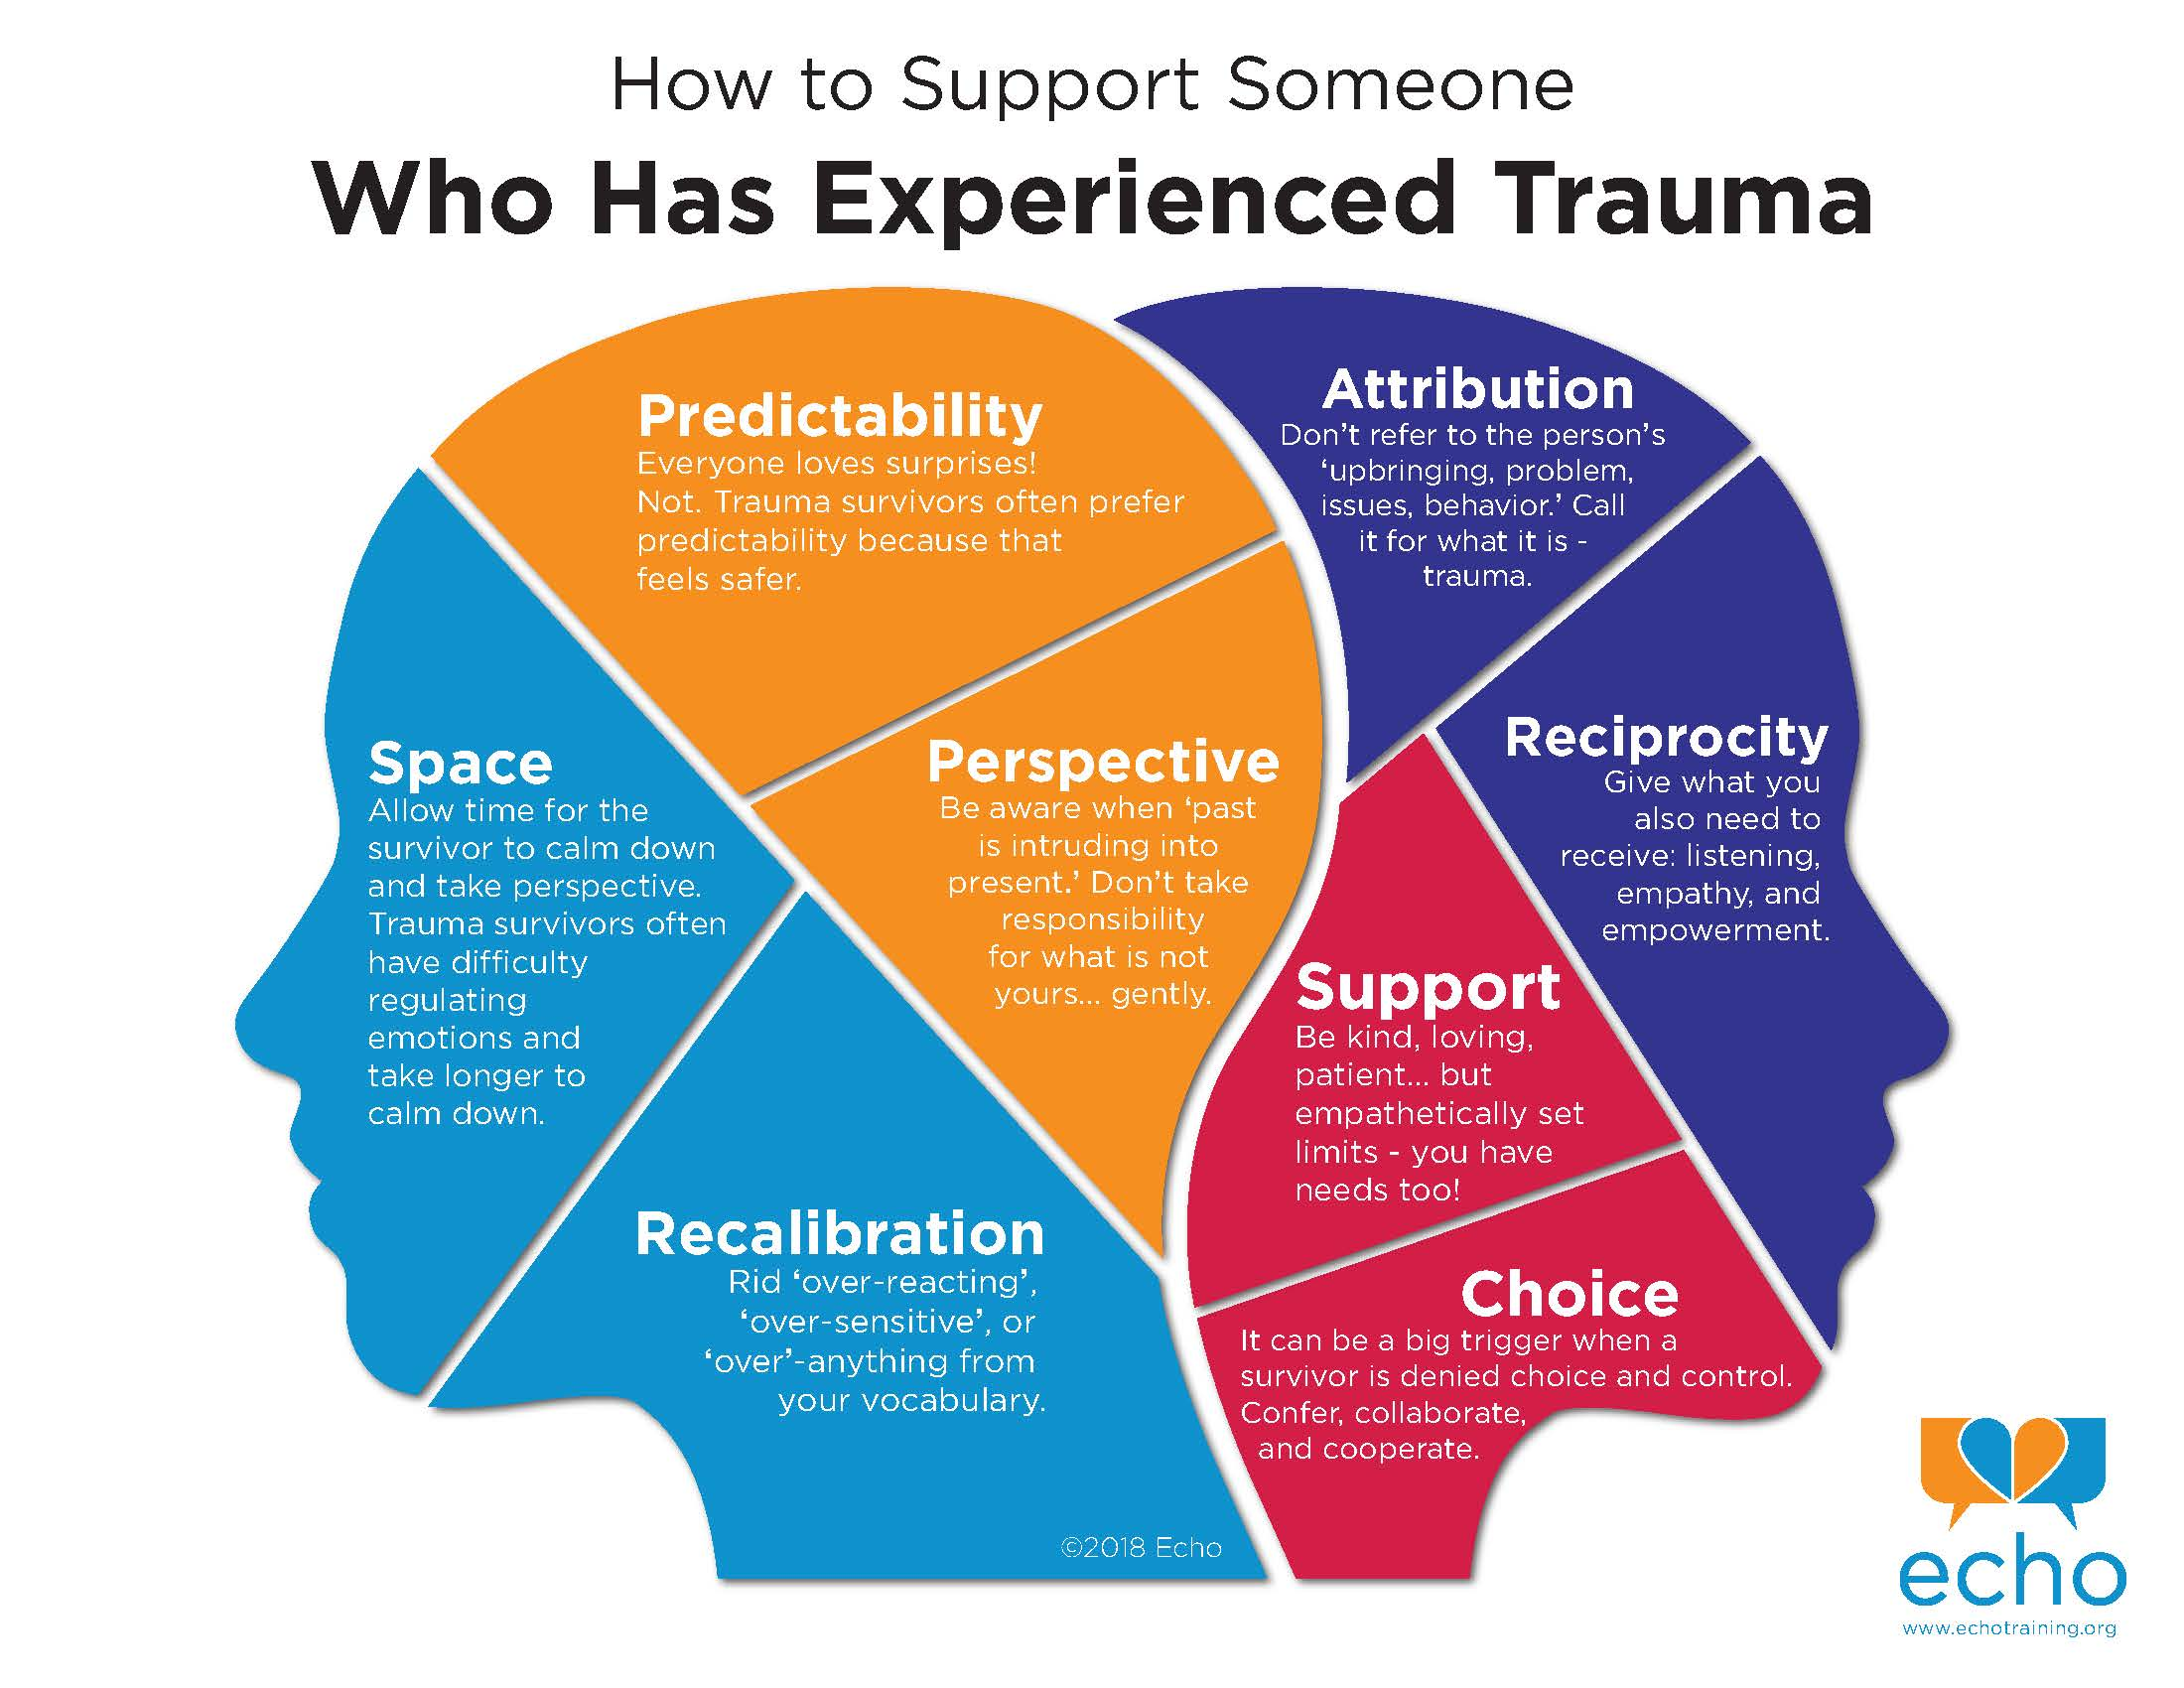 How to Support Someone Who Has Experienced Trauma